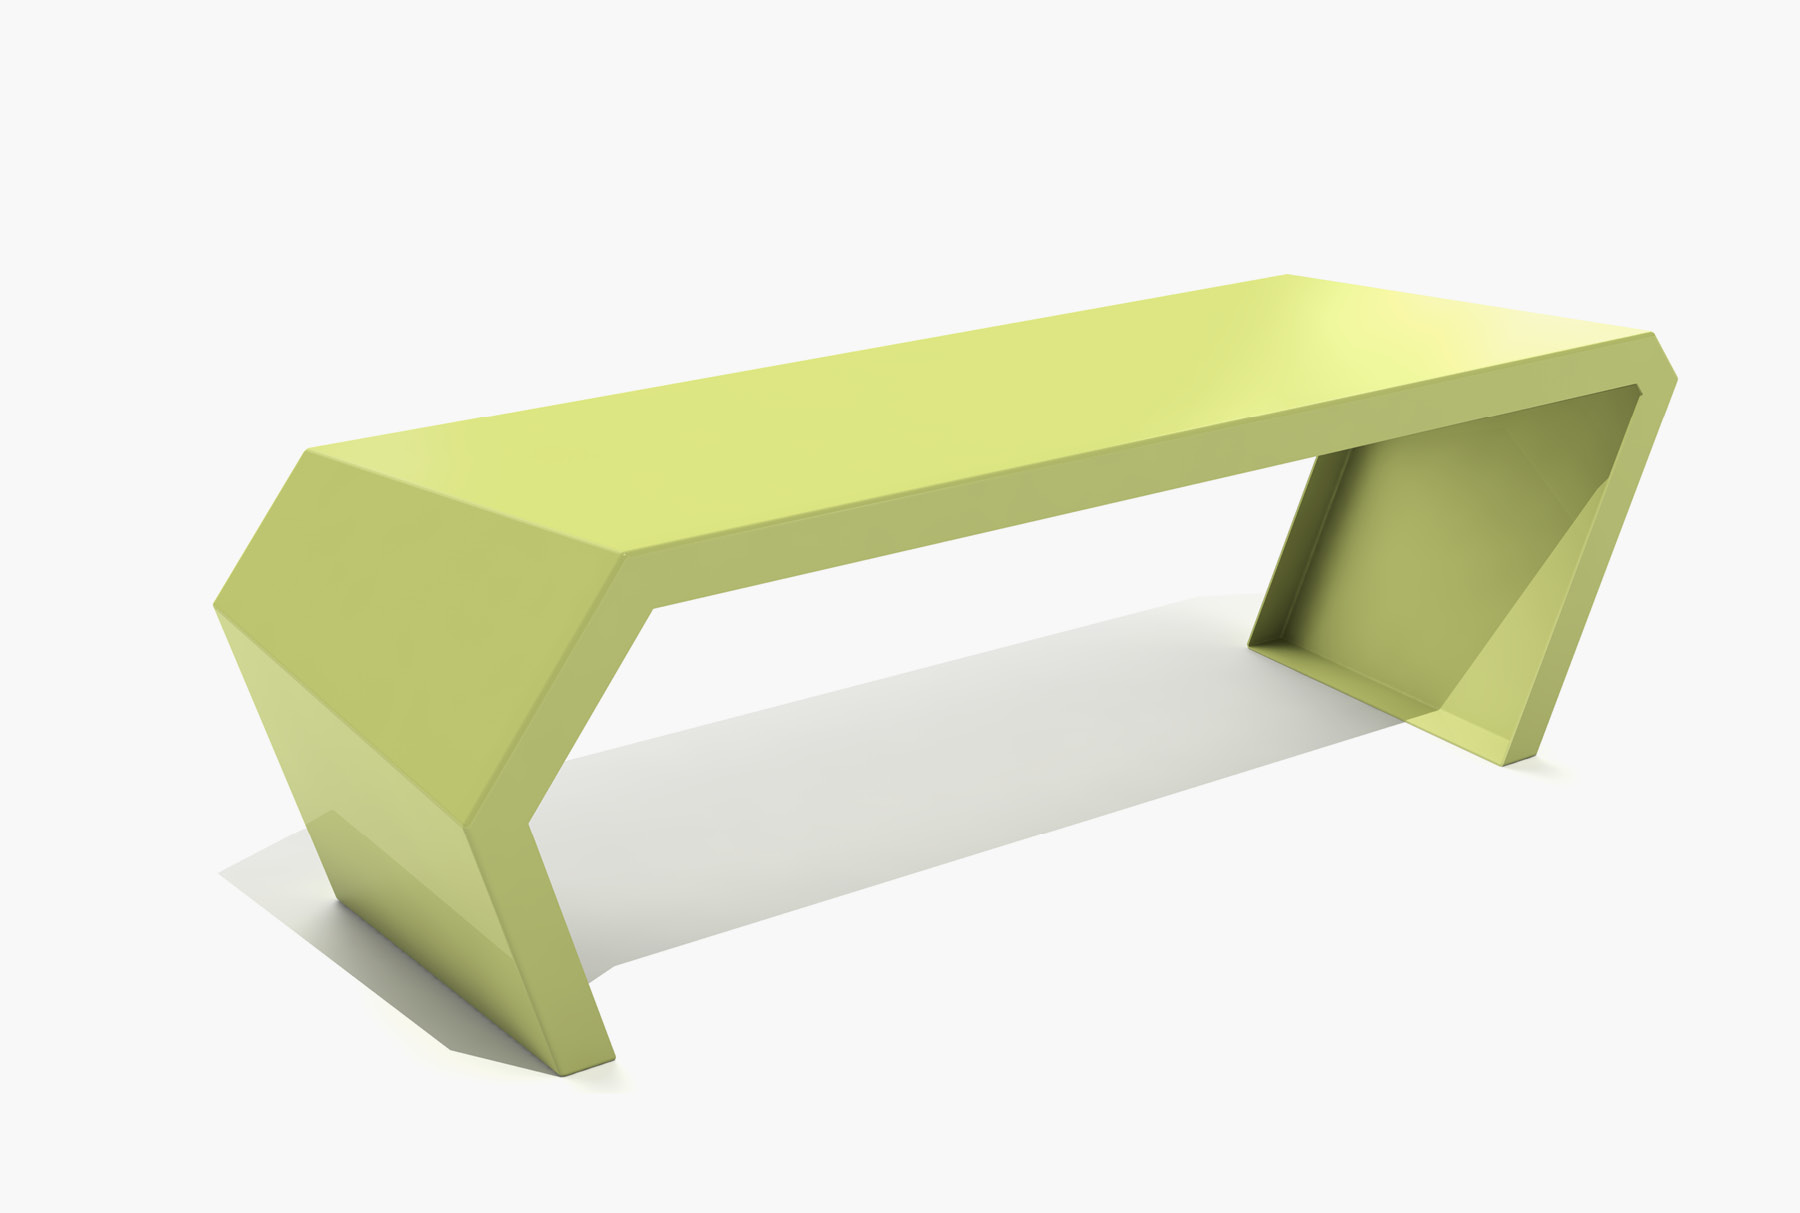 Arktura Pac Bench in Lush Green